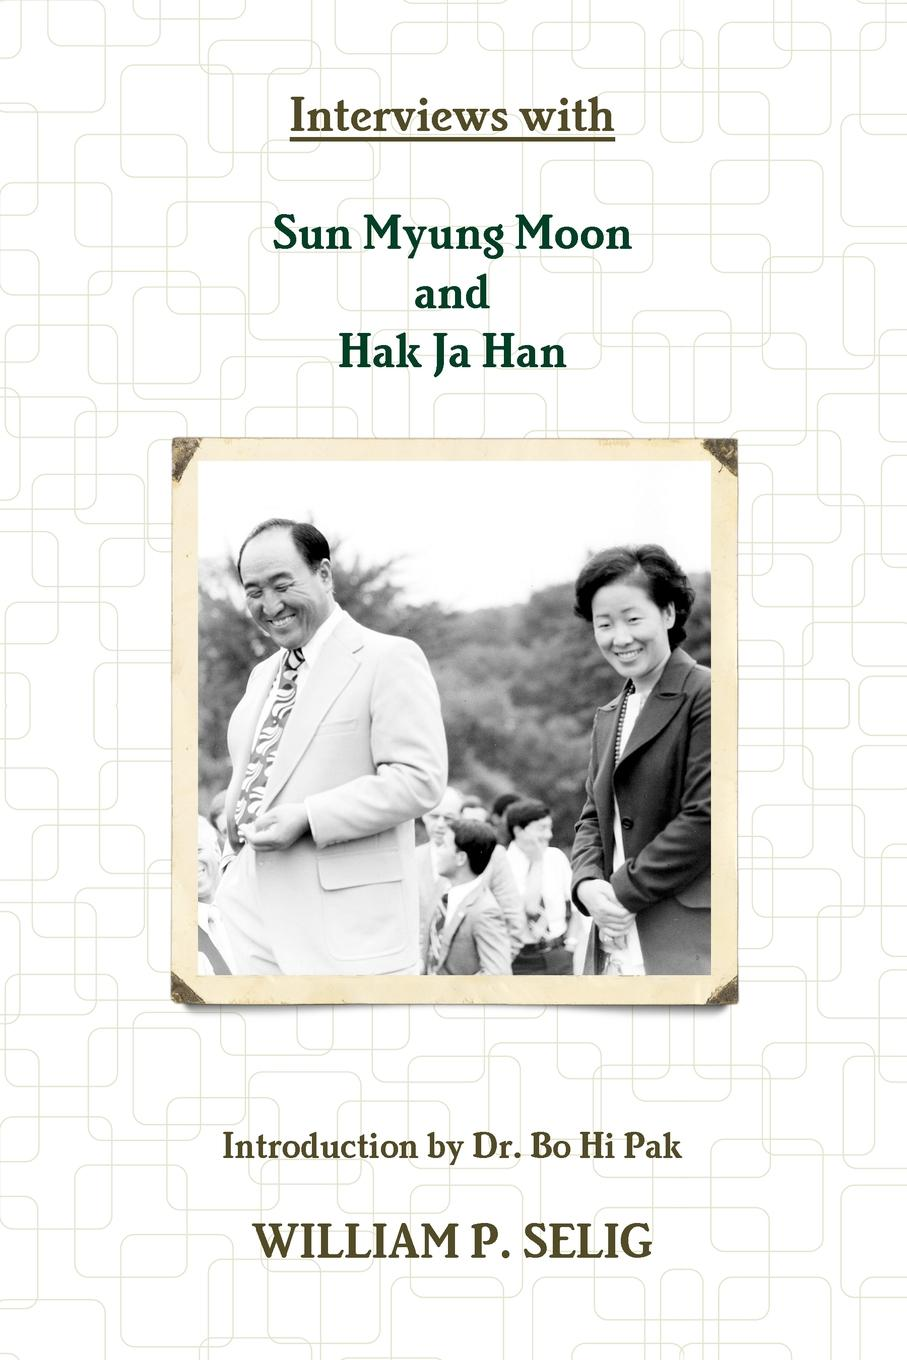 William P. Selig Interviews with Sun Myung Moon and Hak Ja Han bakunin mikhail aleksandrovich god and the state